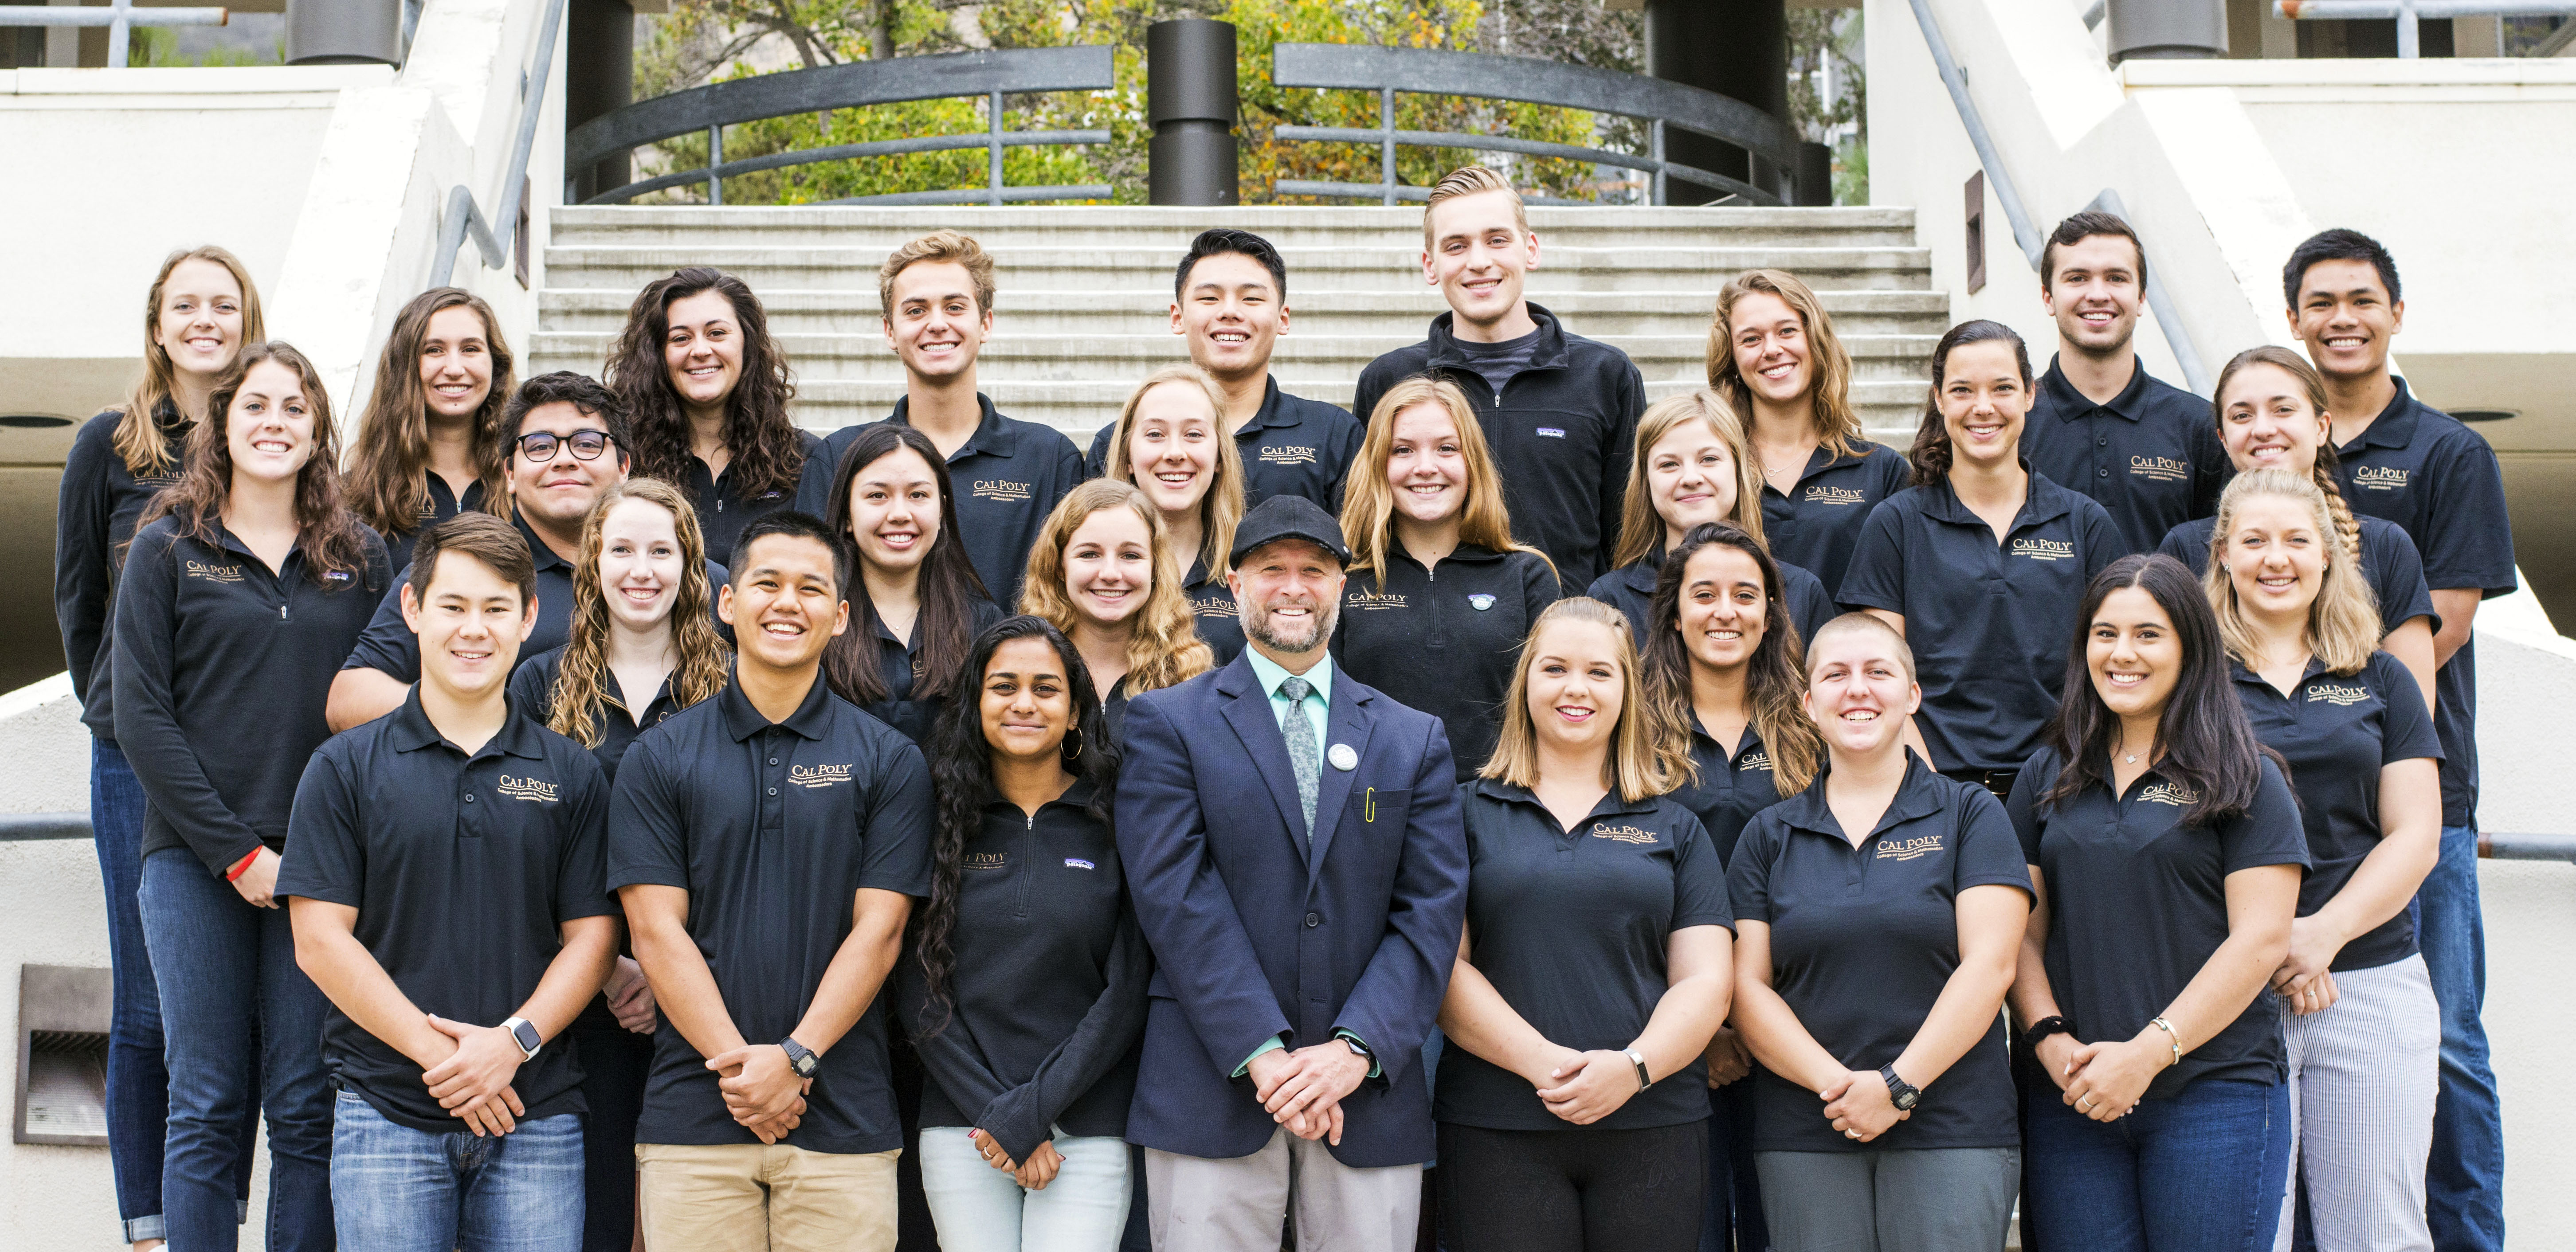 Group image of the 2018 cohort of COSAM Ambassador students and Dean Wendt outside building 25 on the Cal Poly campus